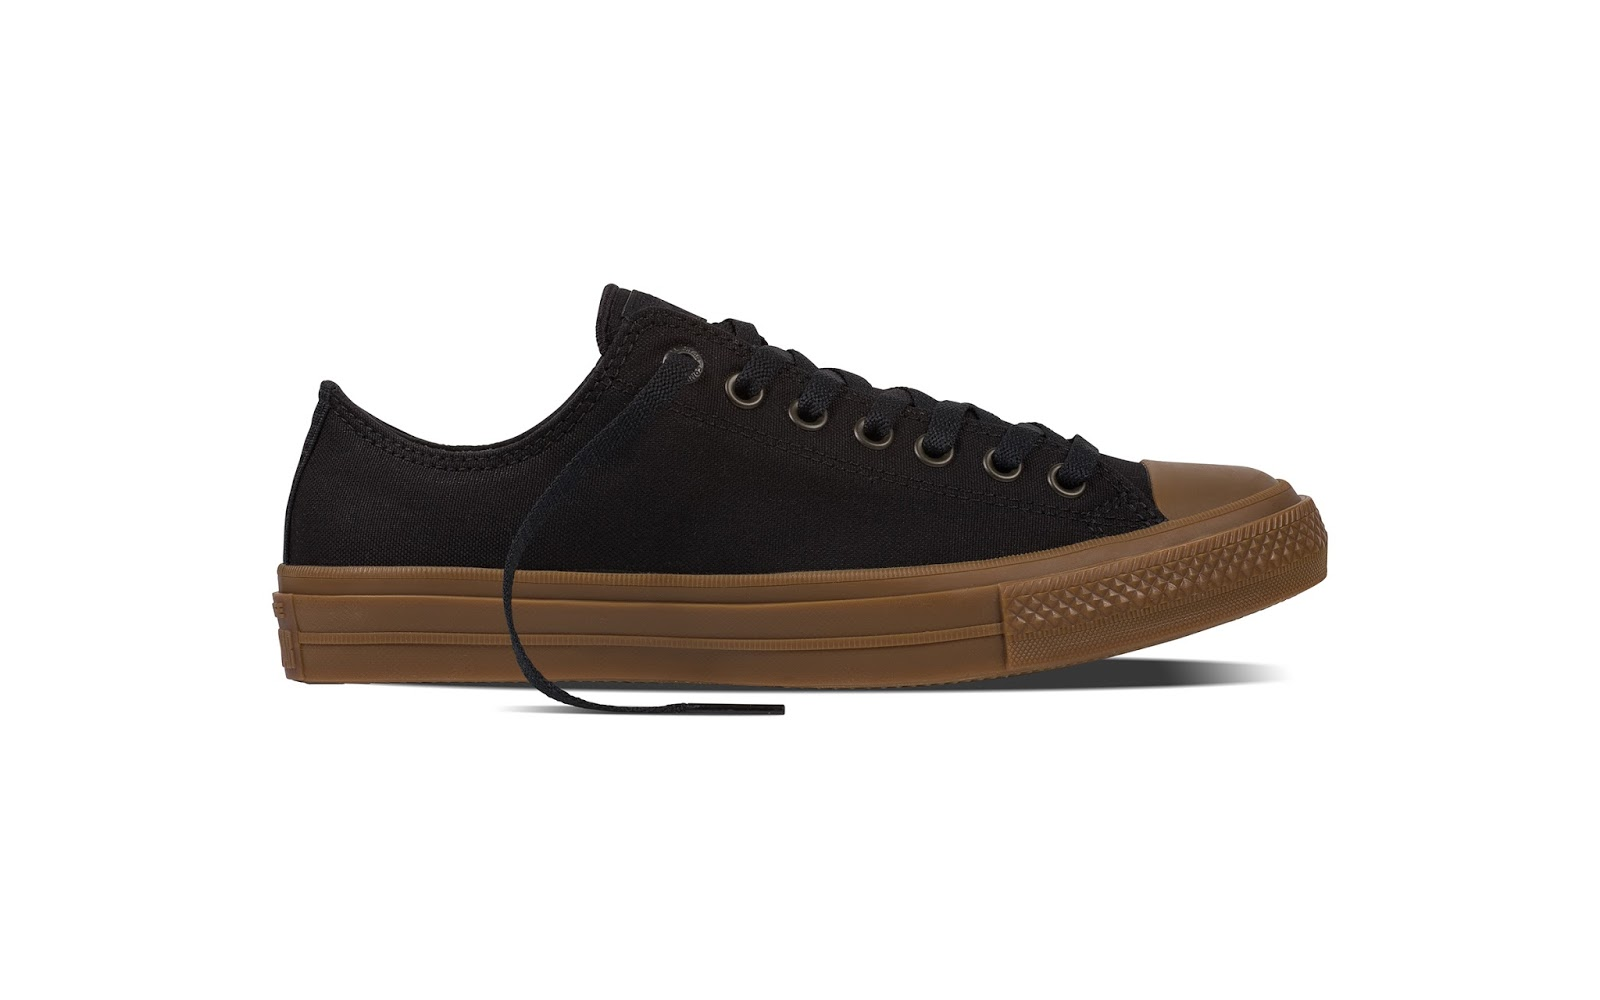 6ad42d919db0 The Chuck II Gum is available in both low top and high top styles.  Available colours includes  black